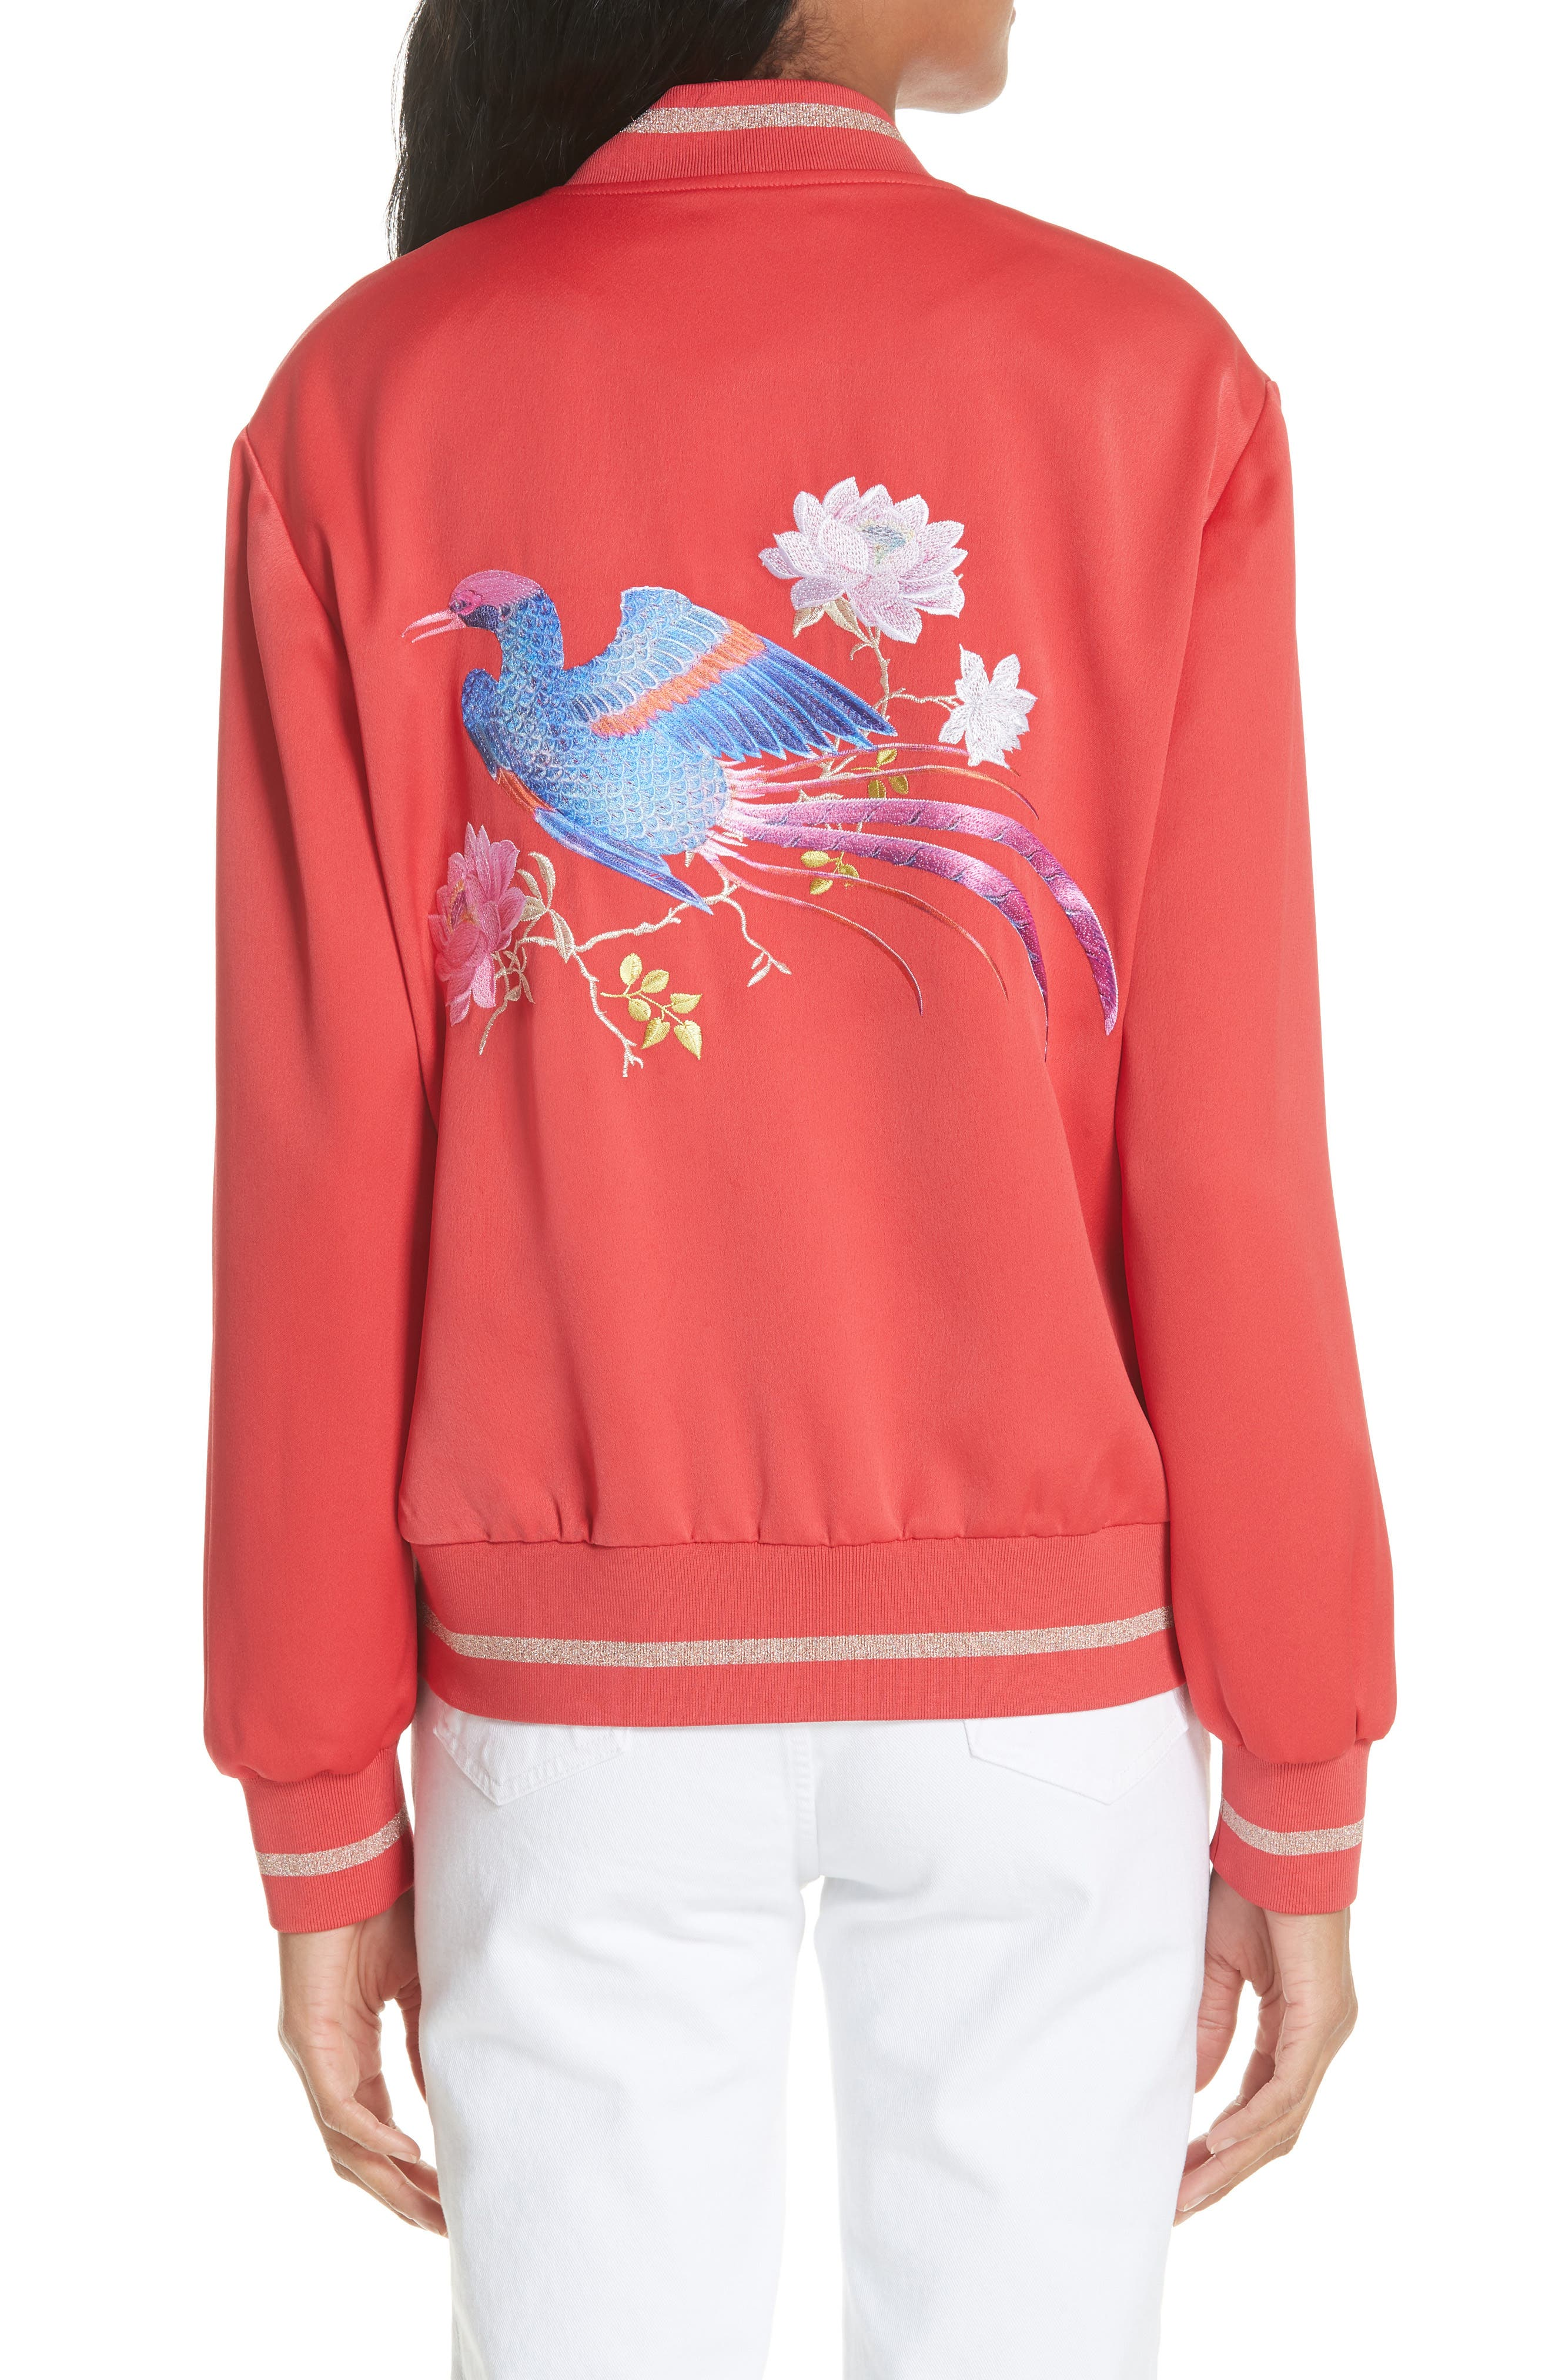 Ruuthe Chinoiserie Embroidery Jacket,                             Alternate thumbnail 2, color,                             Bright Red